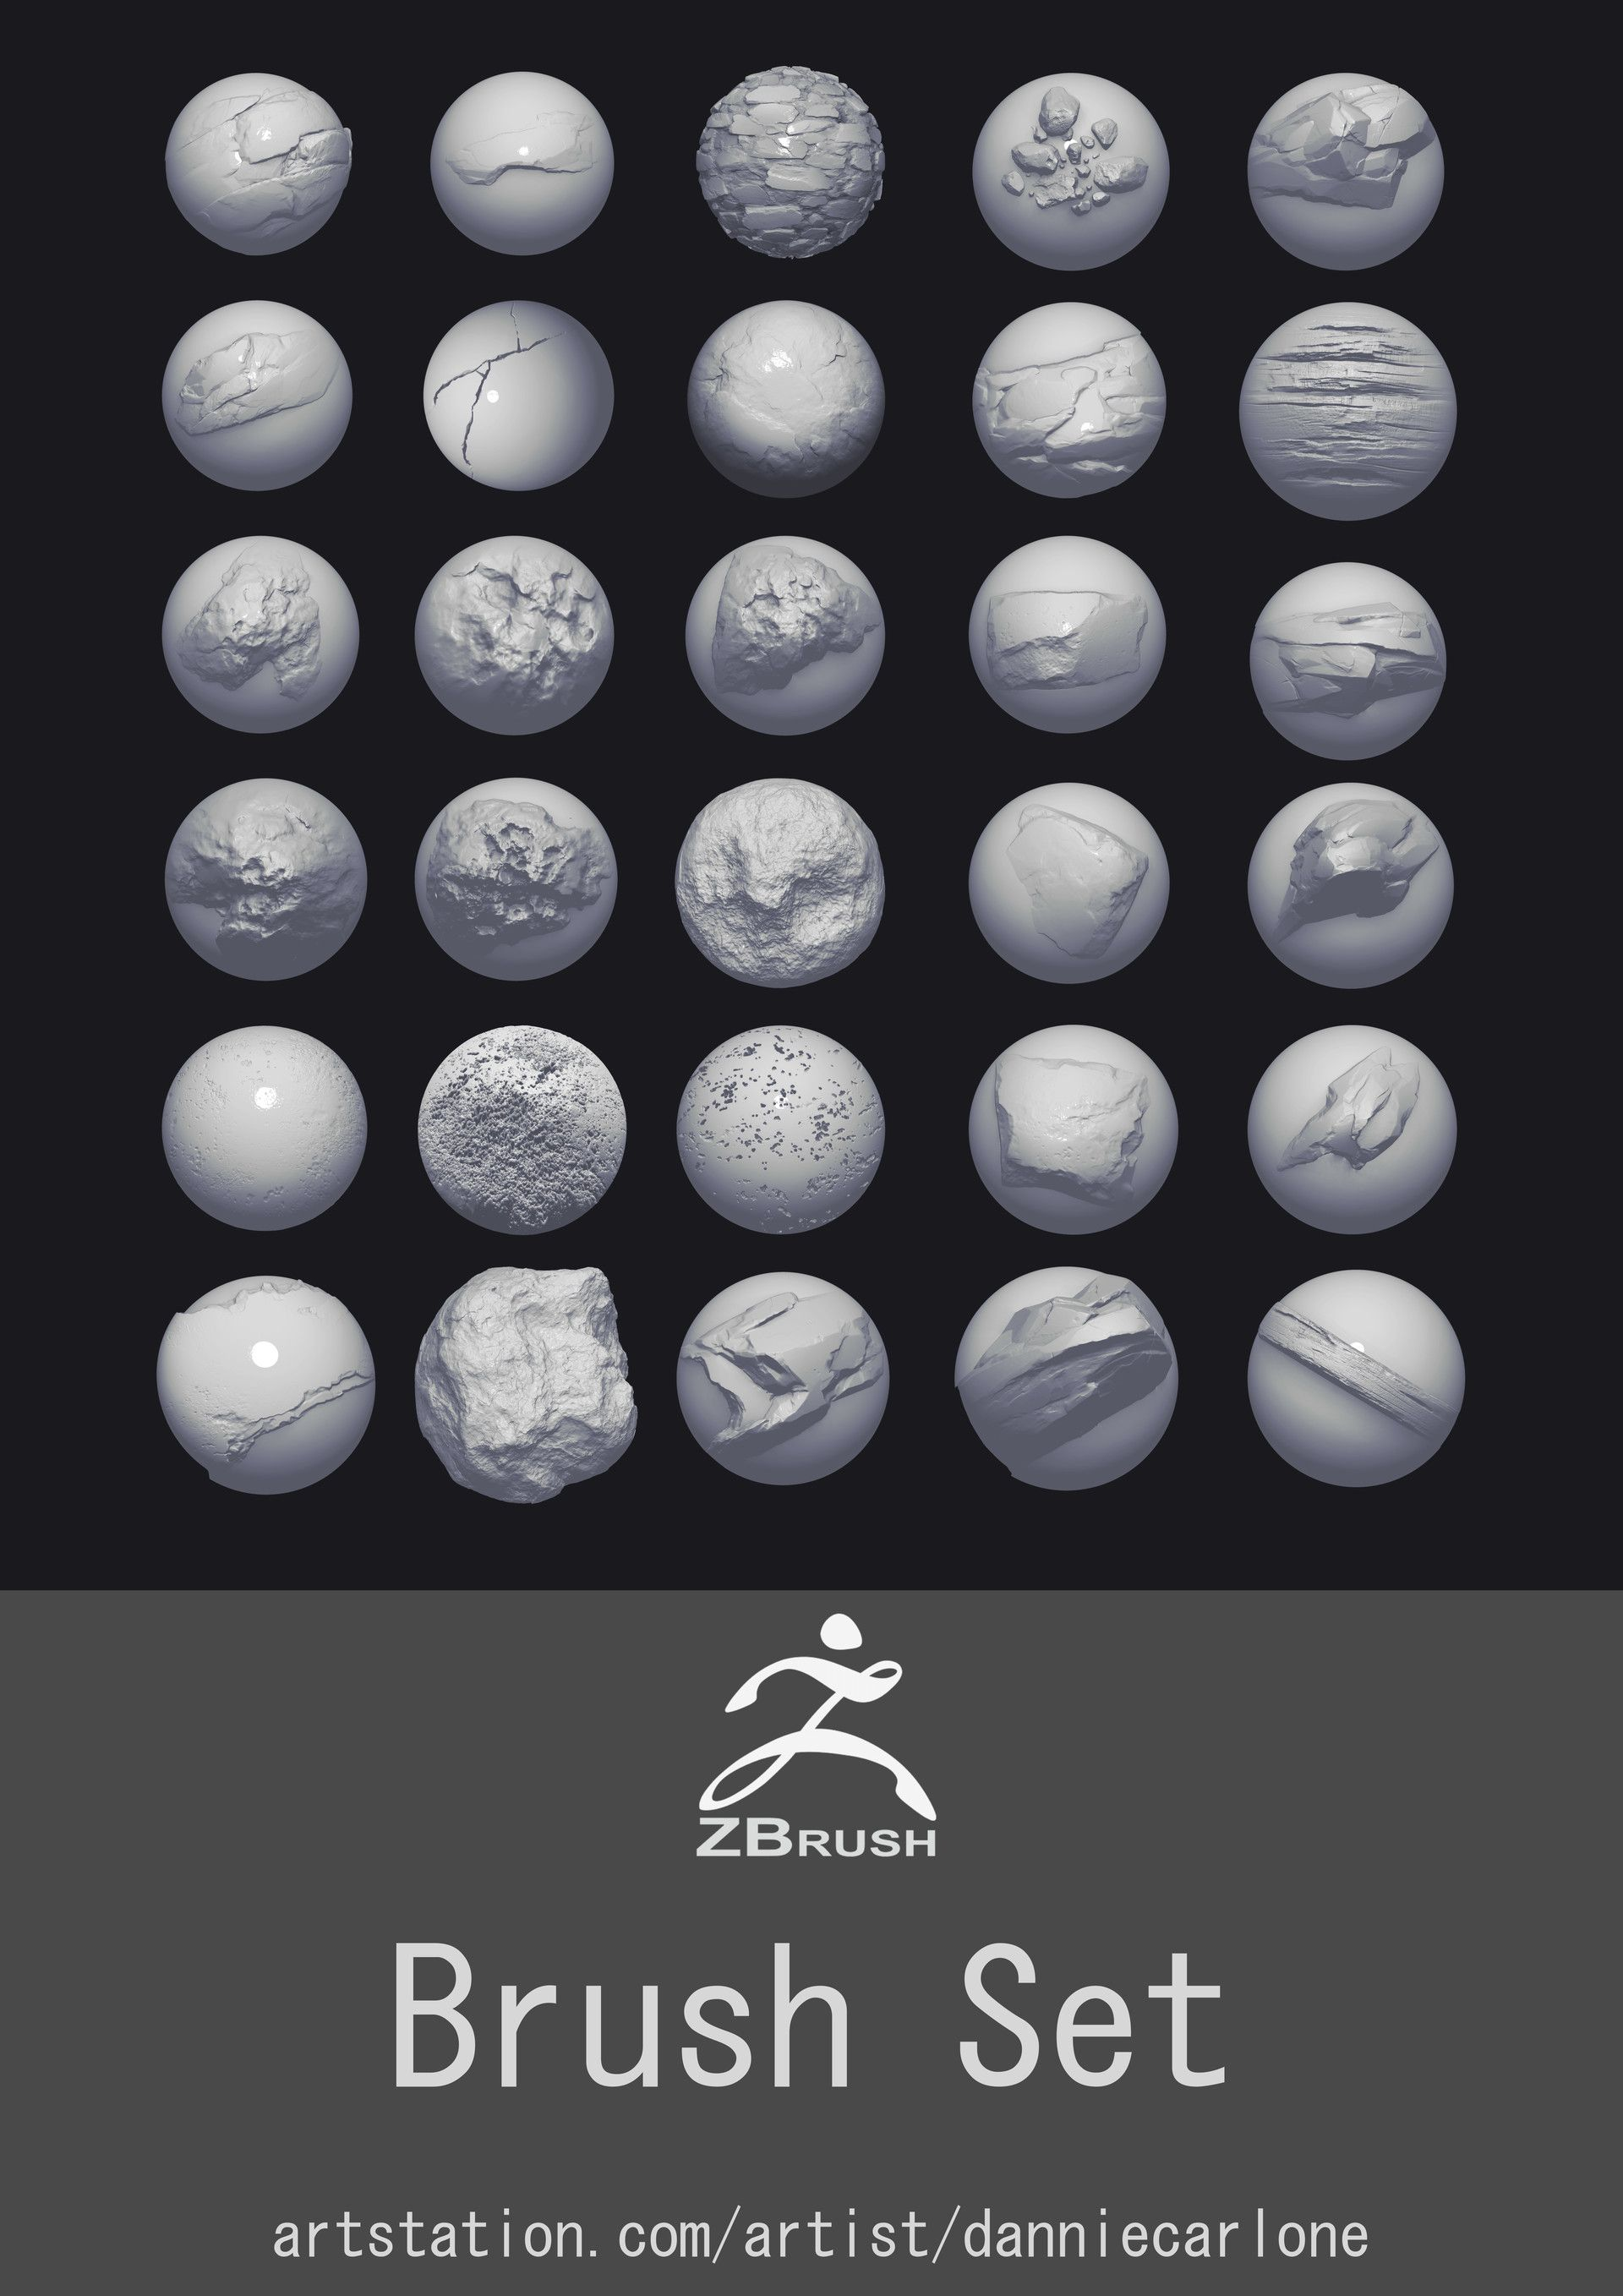 Pin by Algaari Studio on Zbrush Brushes and alphas in 2019 | Zbrush